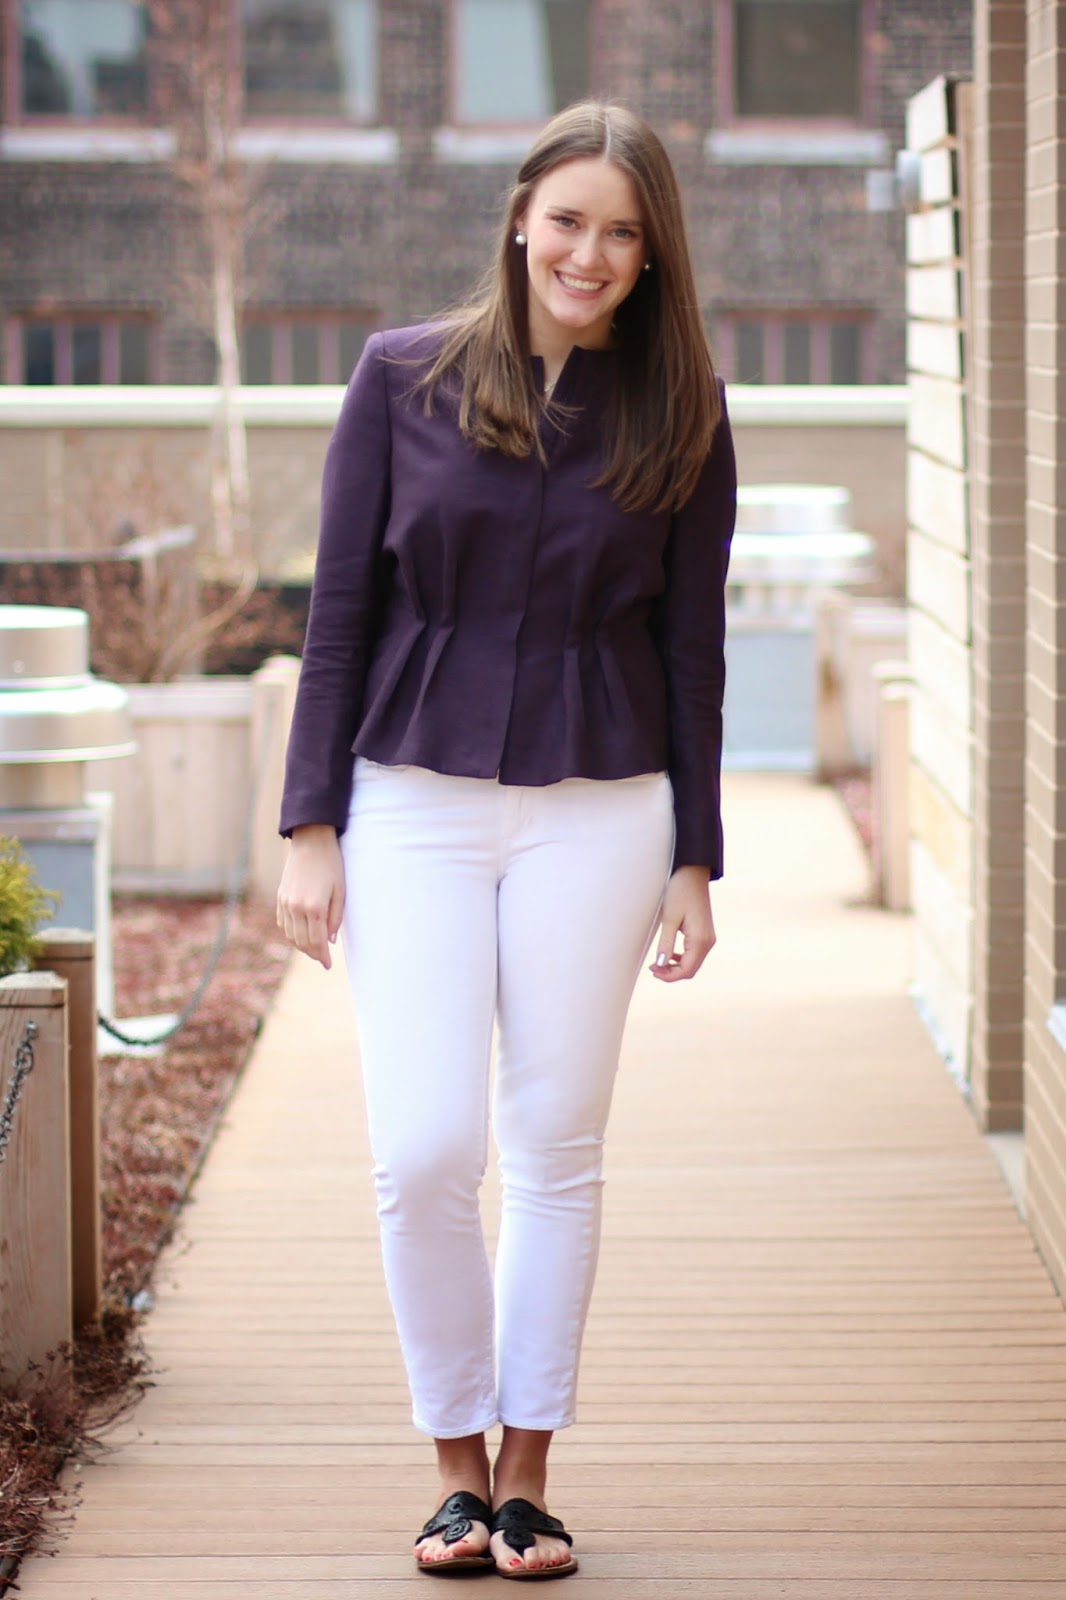 stylish outfit to wear to a baseball game